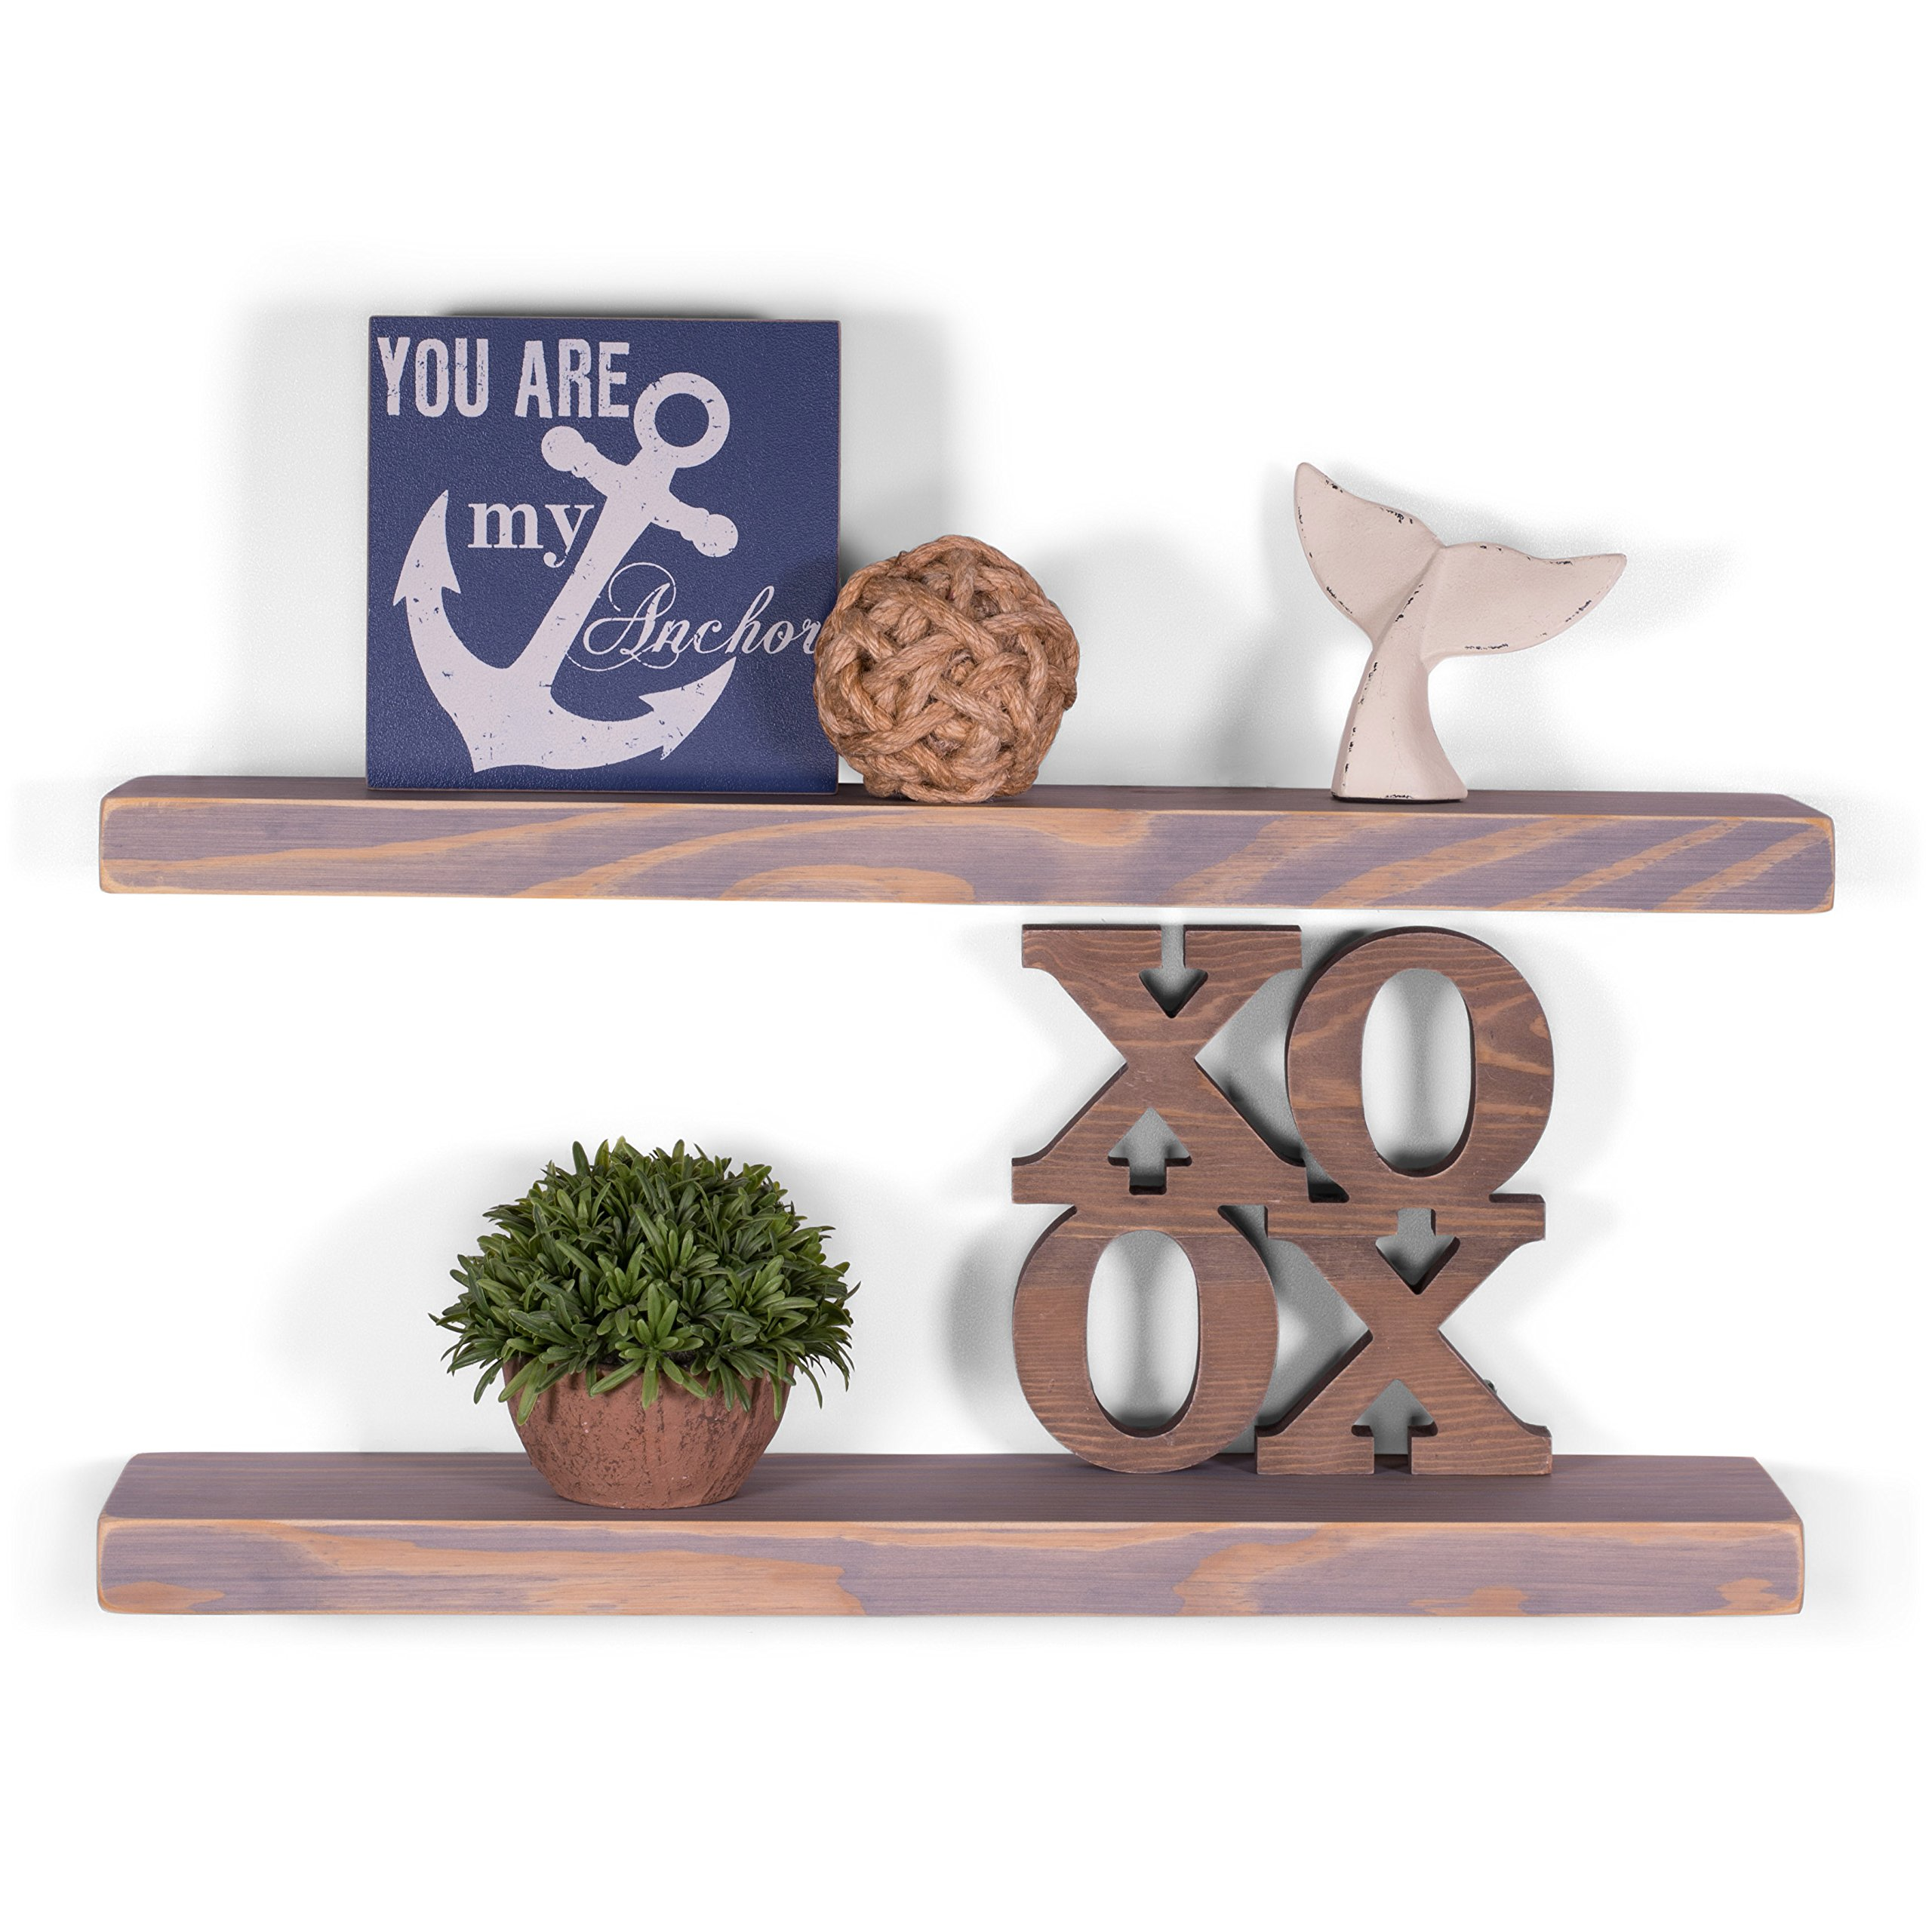 DAKODA LOVE 5.25'' Deep Weathered Edge Floating Shelves, USA Handmade, Clear Coat Finish, 100% Countersunk Hidden Floating Shelf Brackets, Beautiful Grain Pine Wood Rustic (Set of 2) (24'', Greige)